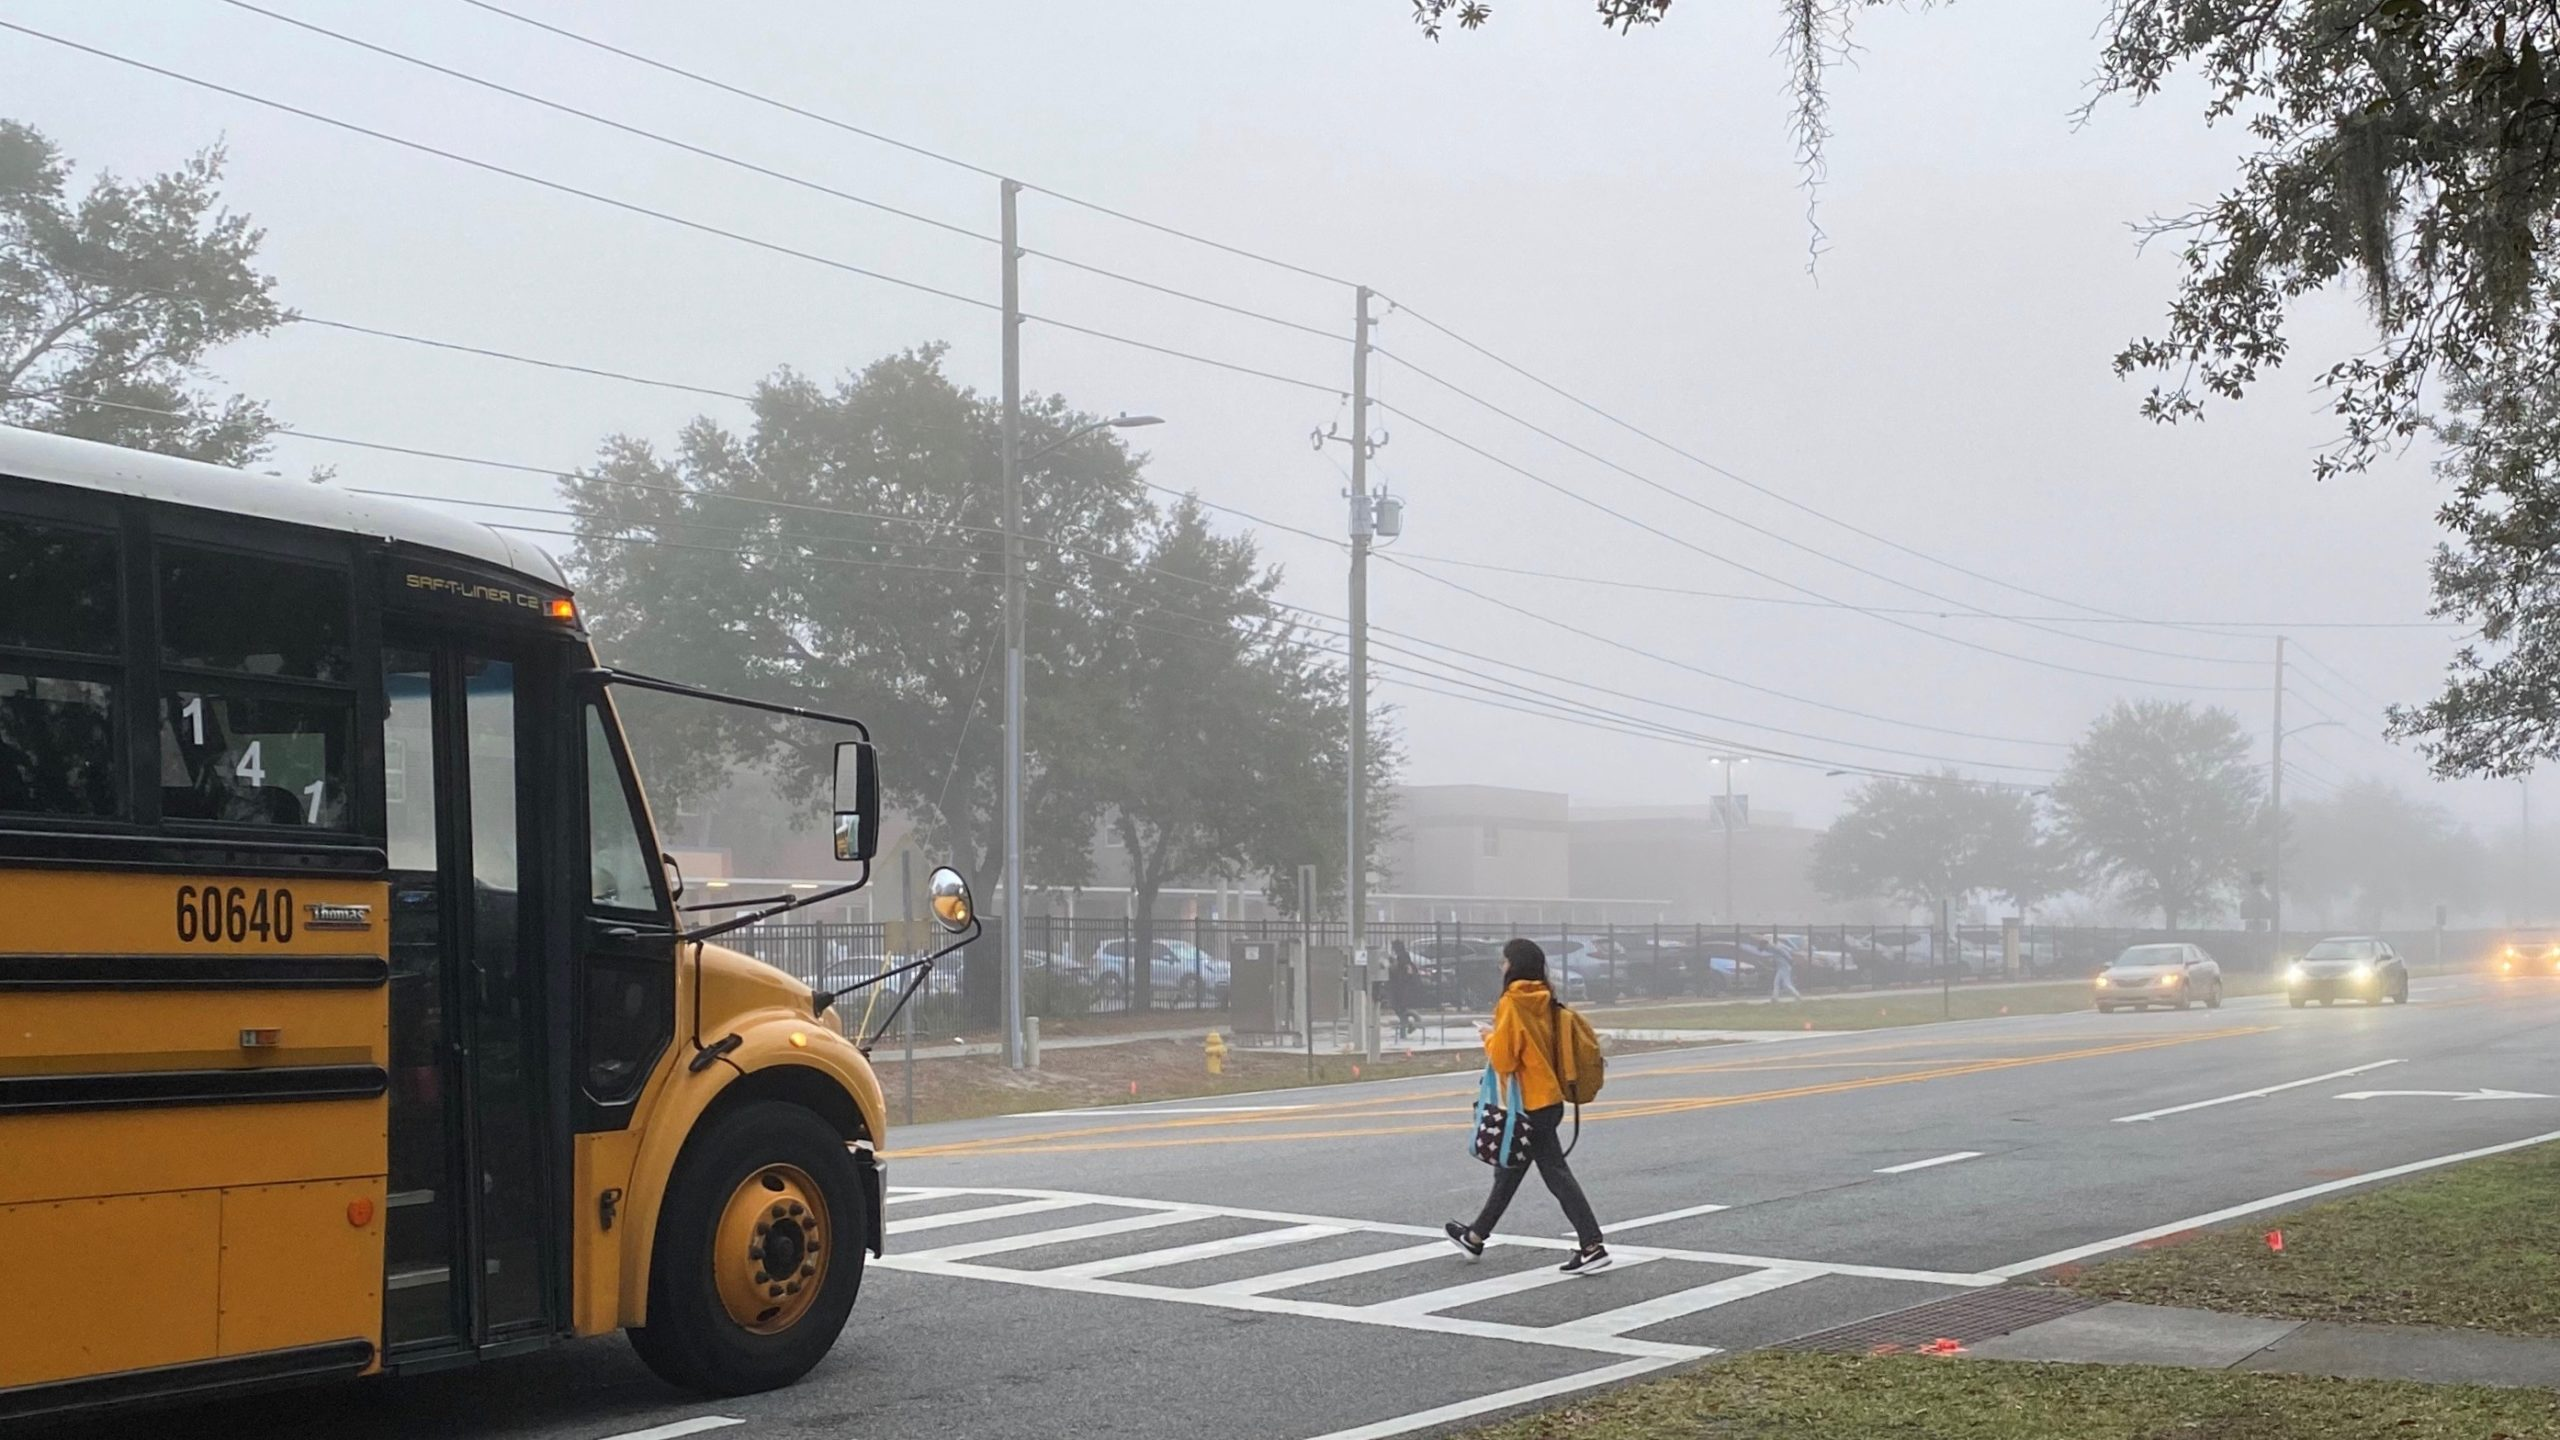 Alert To Drivers: Watch For Students Returning To Schools